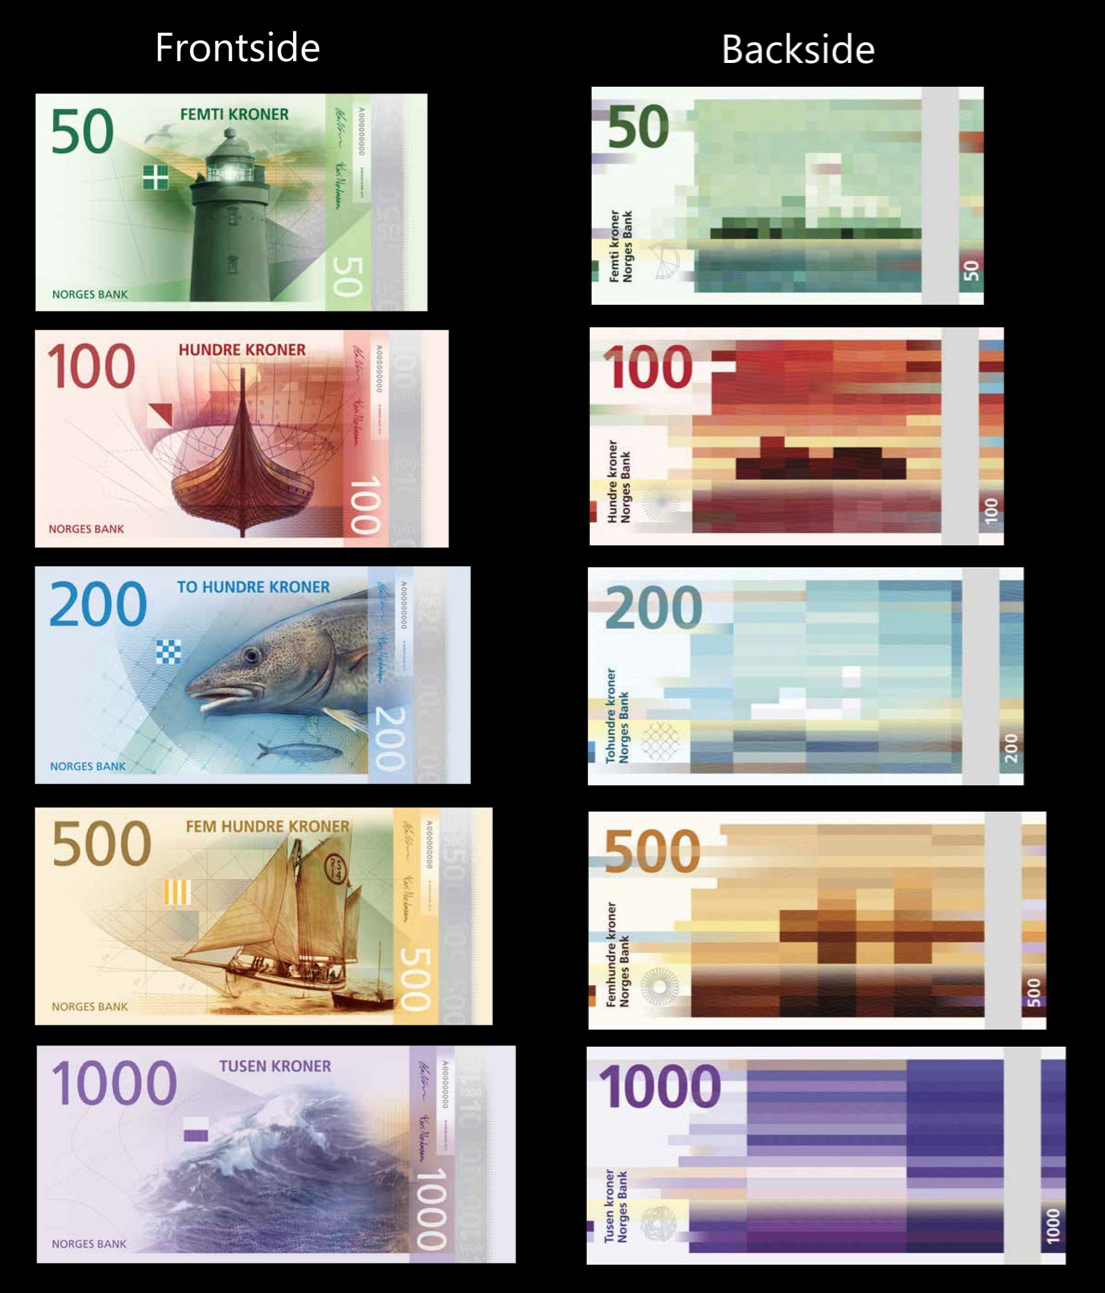 RT @gomboli: The design of the new Norwegian Krone looks awesome! http://t.co/ZXh0SP6B0b